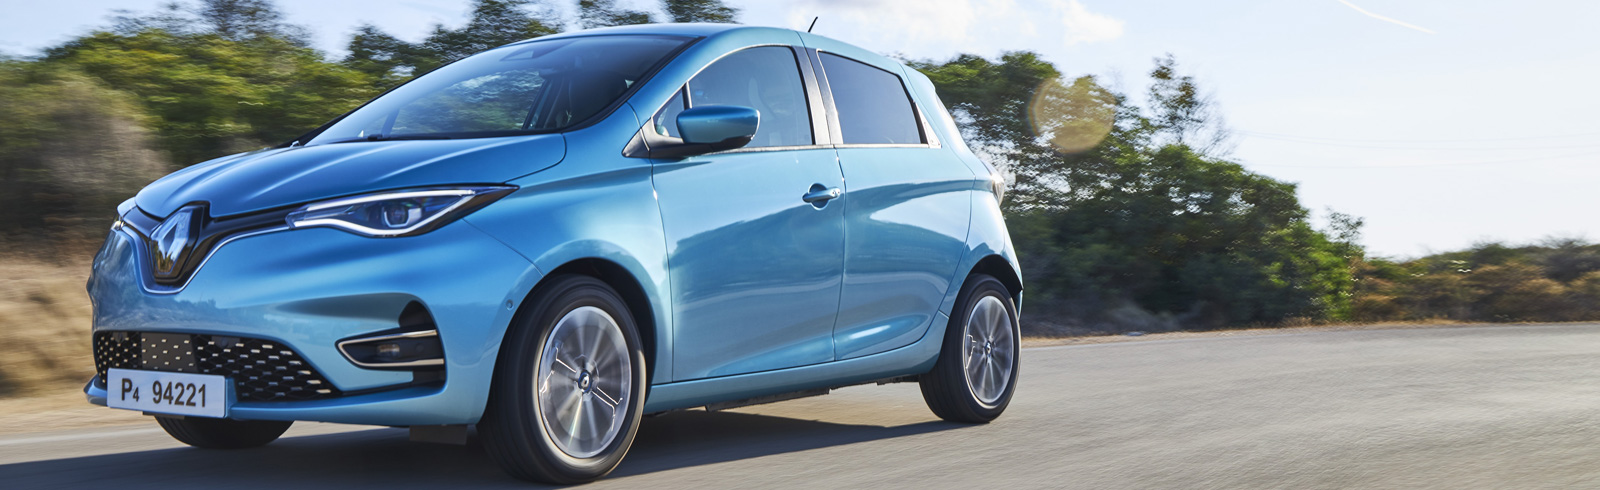 2020 Renault Zoe 52 kWh goes on sale in Europe, pricing starts at €19,900